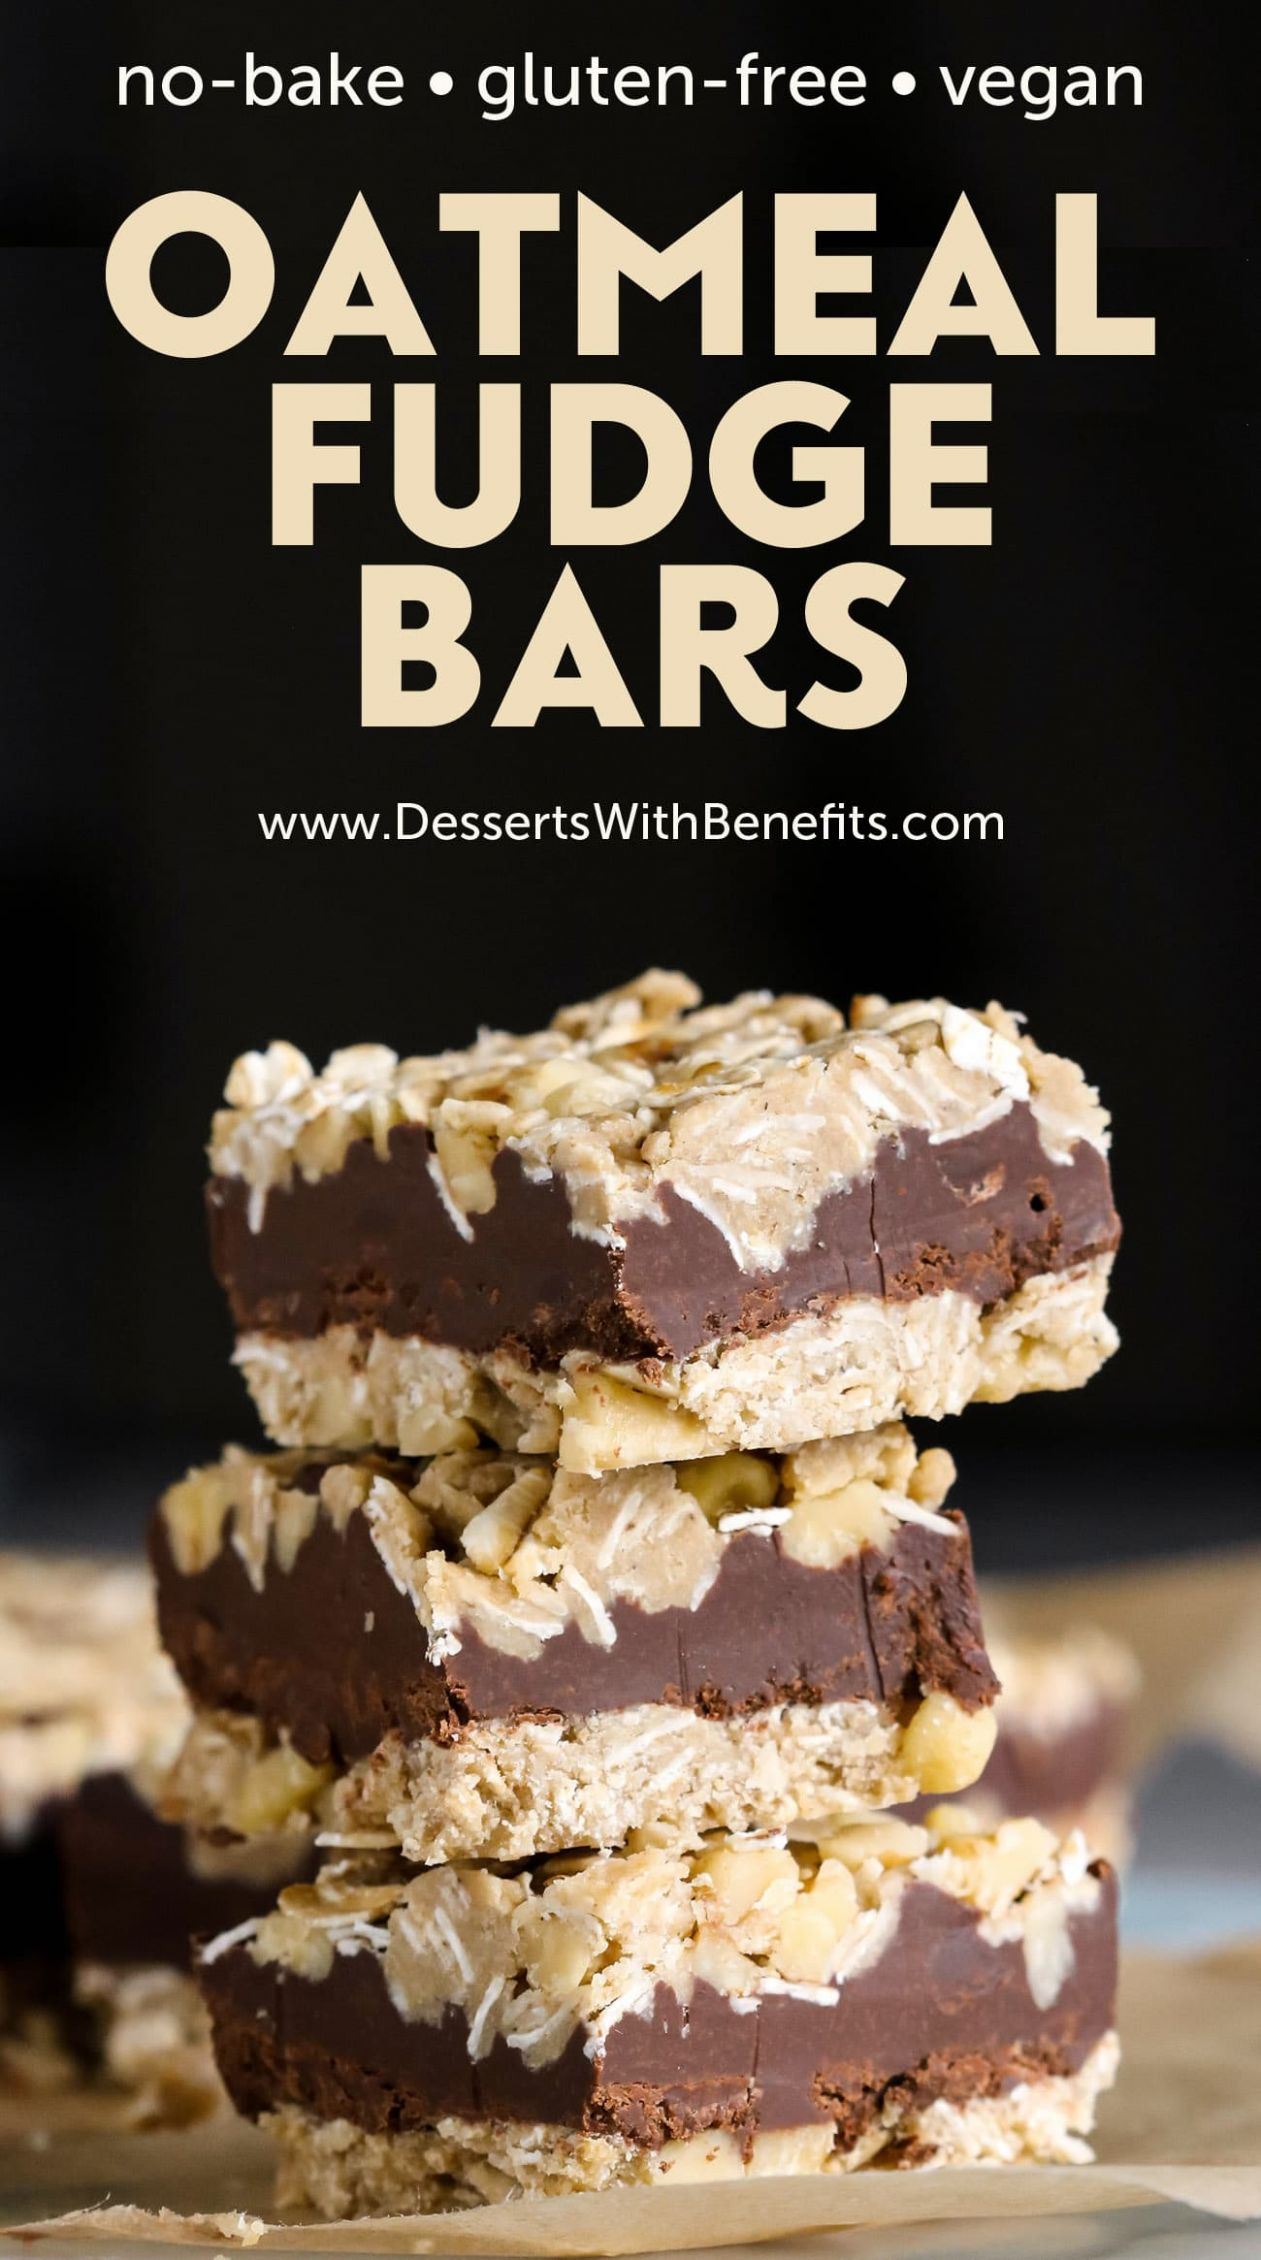 Healthy No-Bake Oatmeal Fudge Bars - Healthy Recipes No Oven